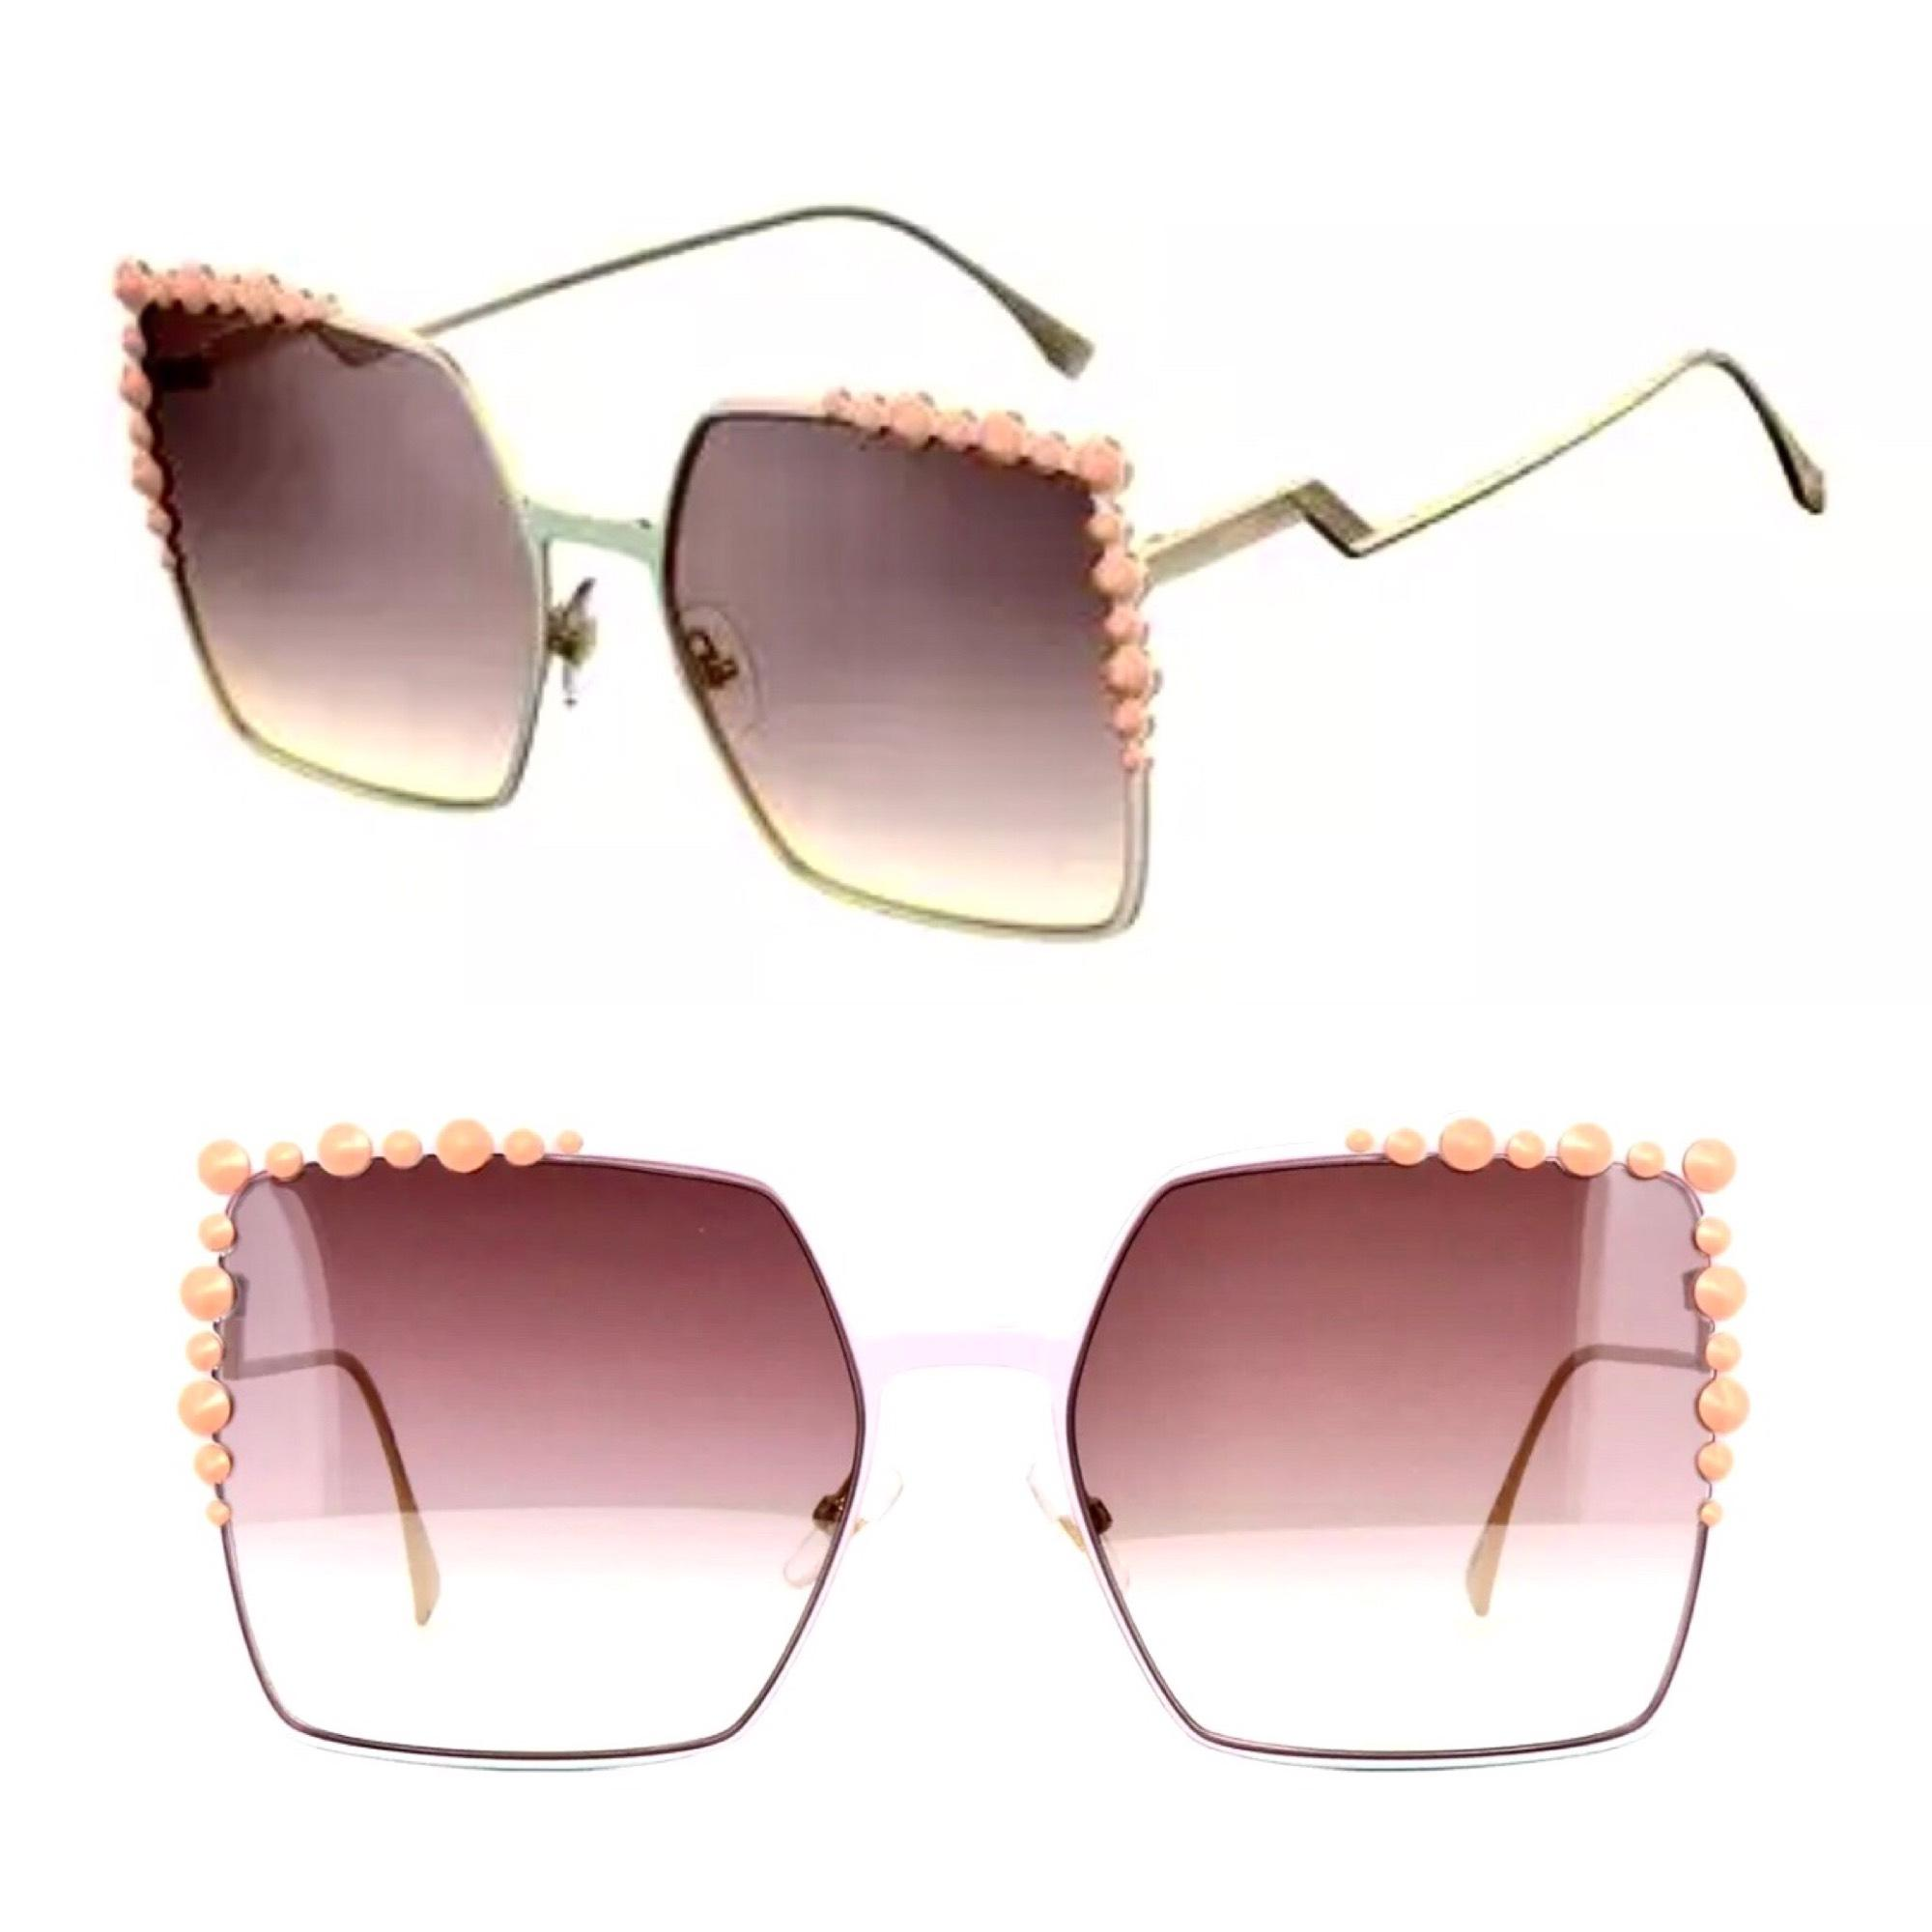 Fendi Square sunglasses 5A5T2h